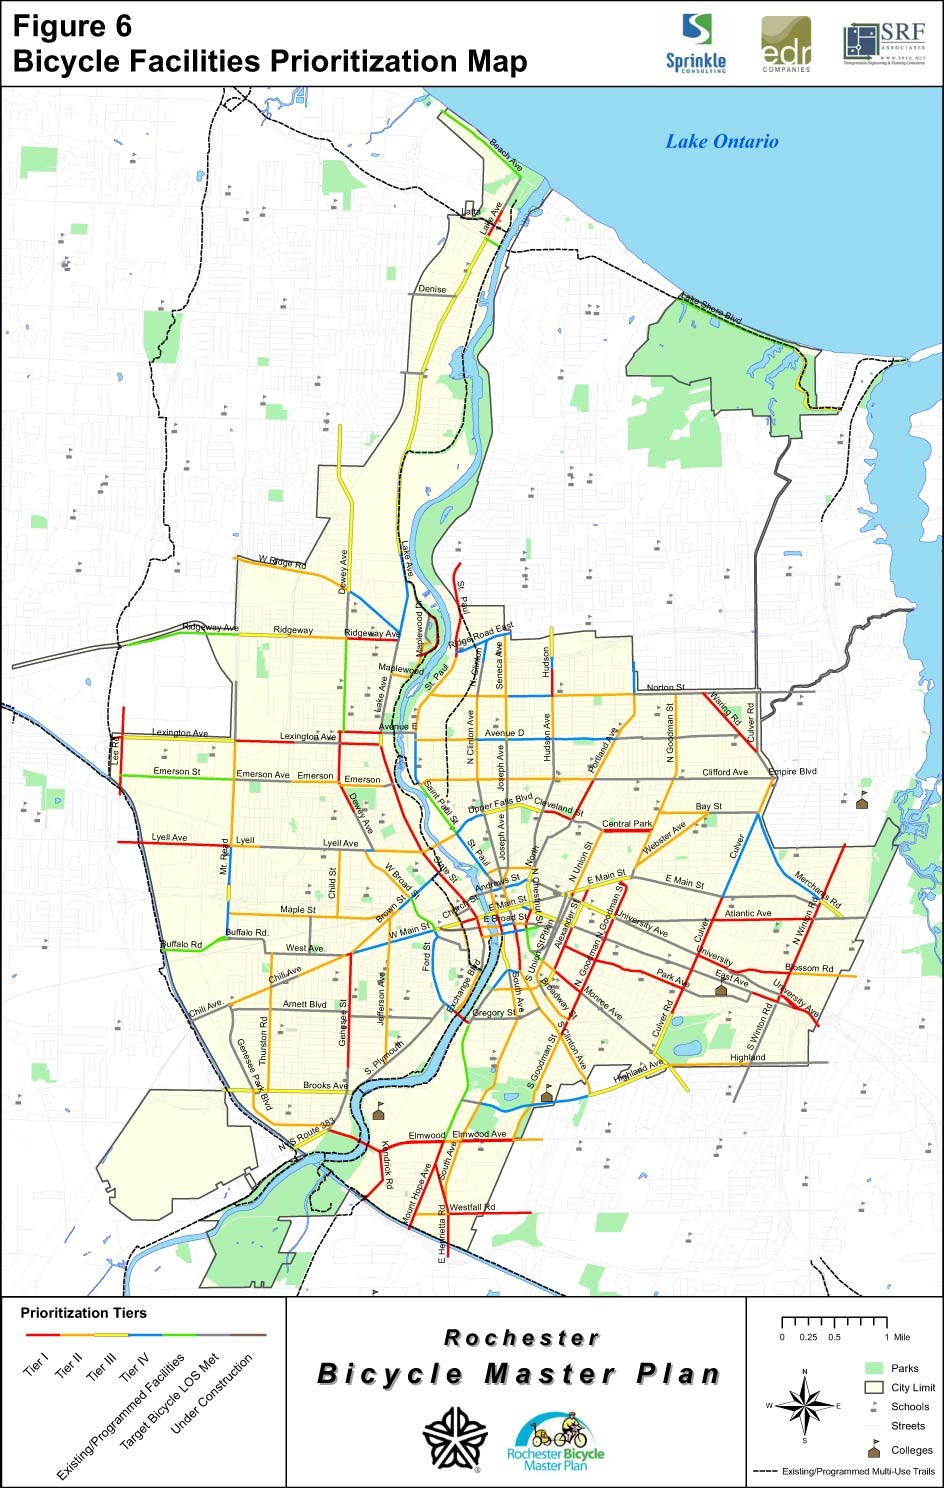 Rochester Bicycle Facilities Prioritization Map